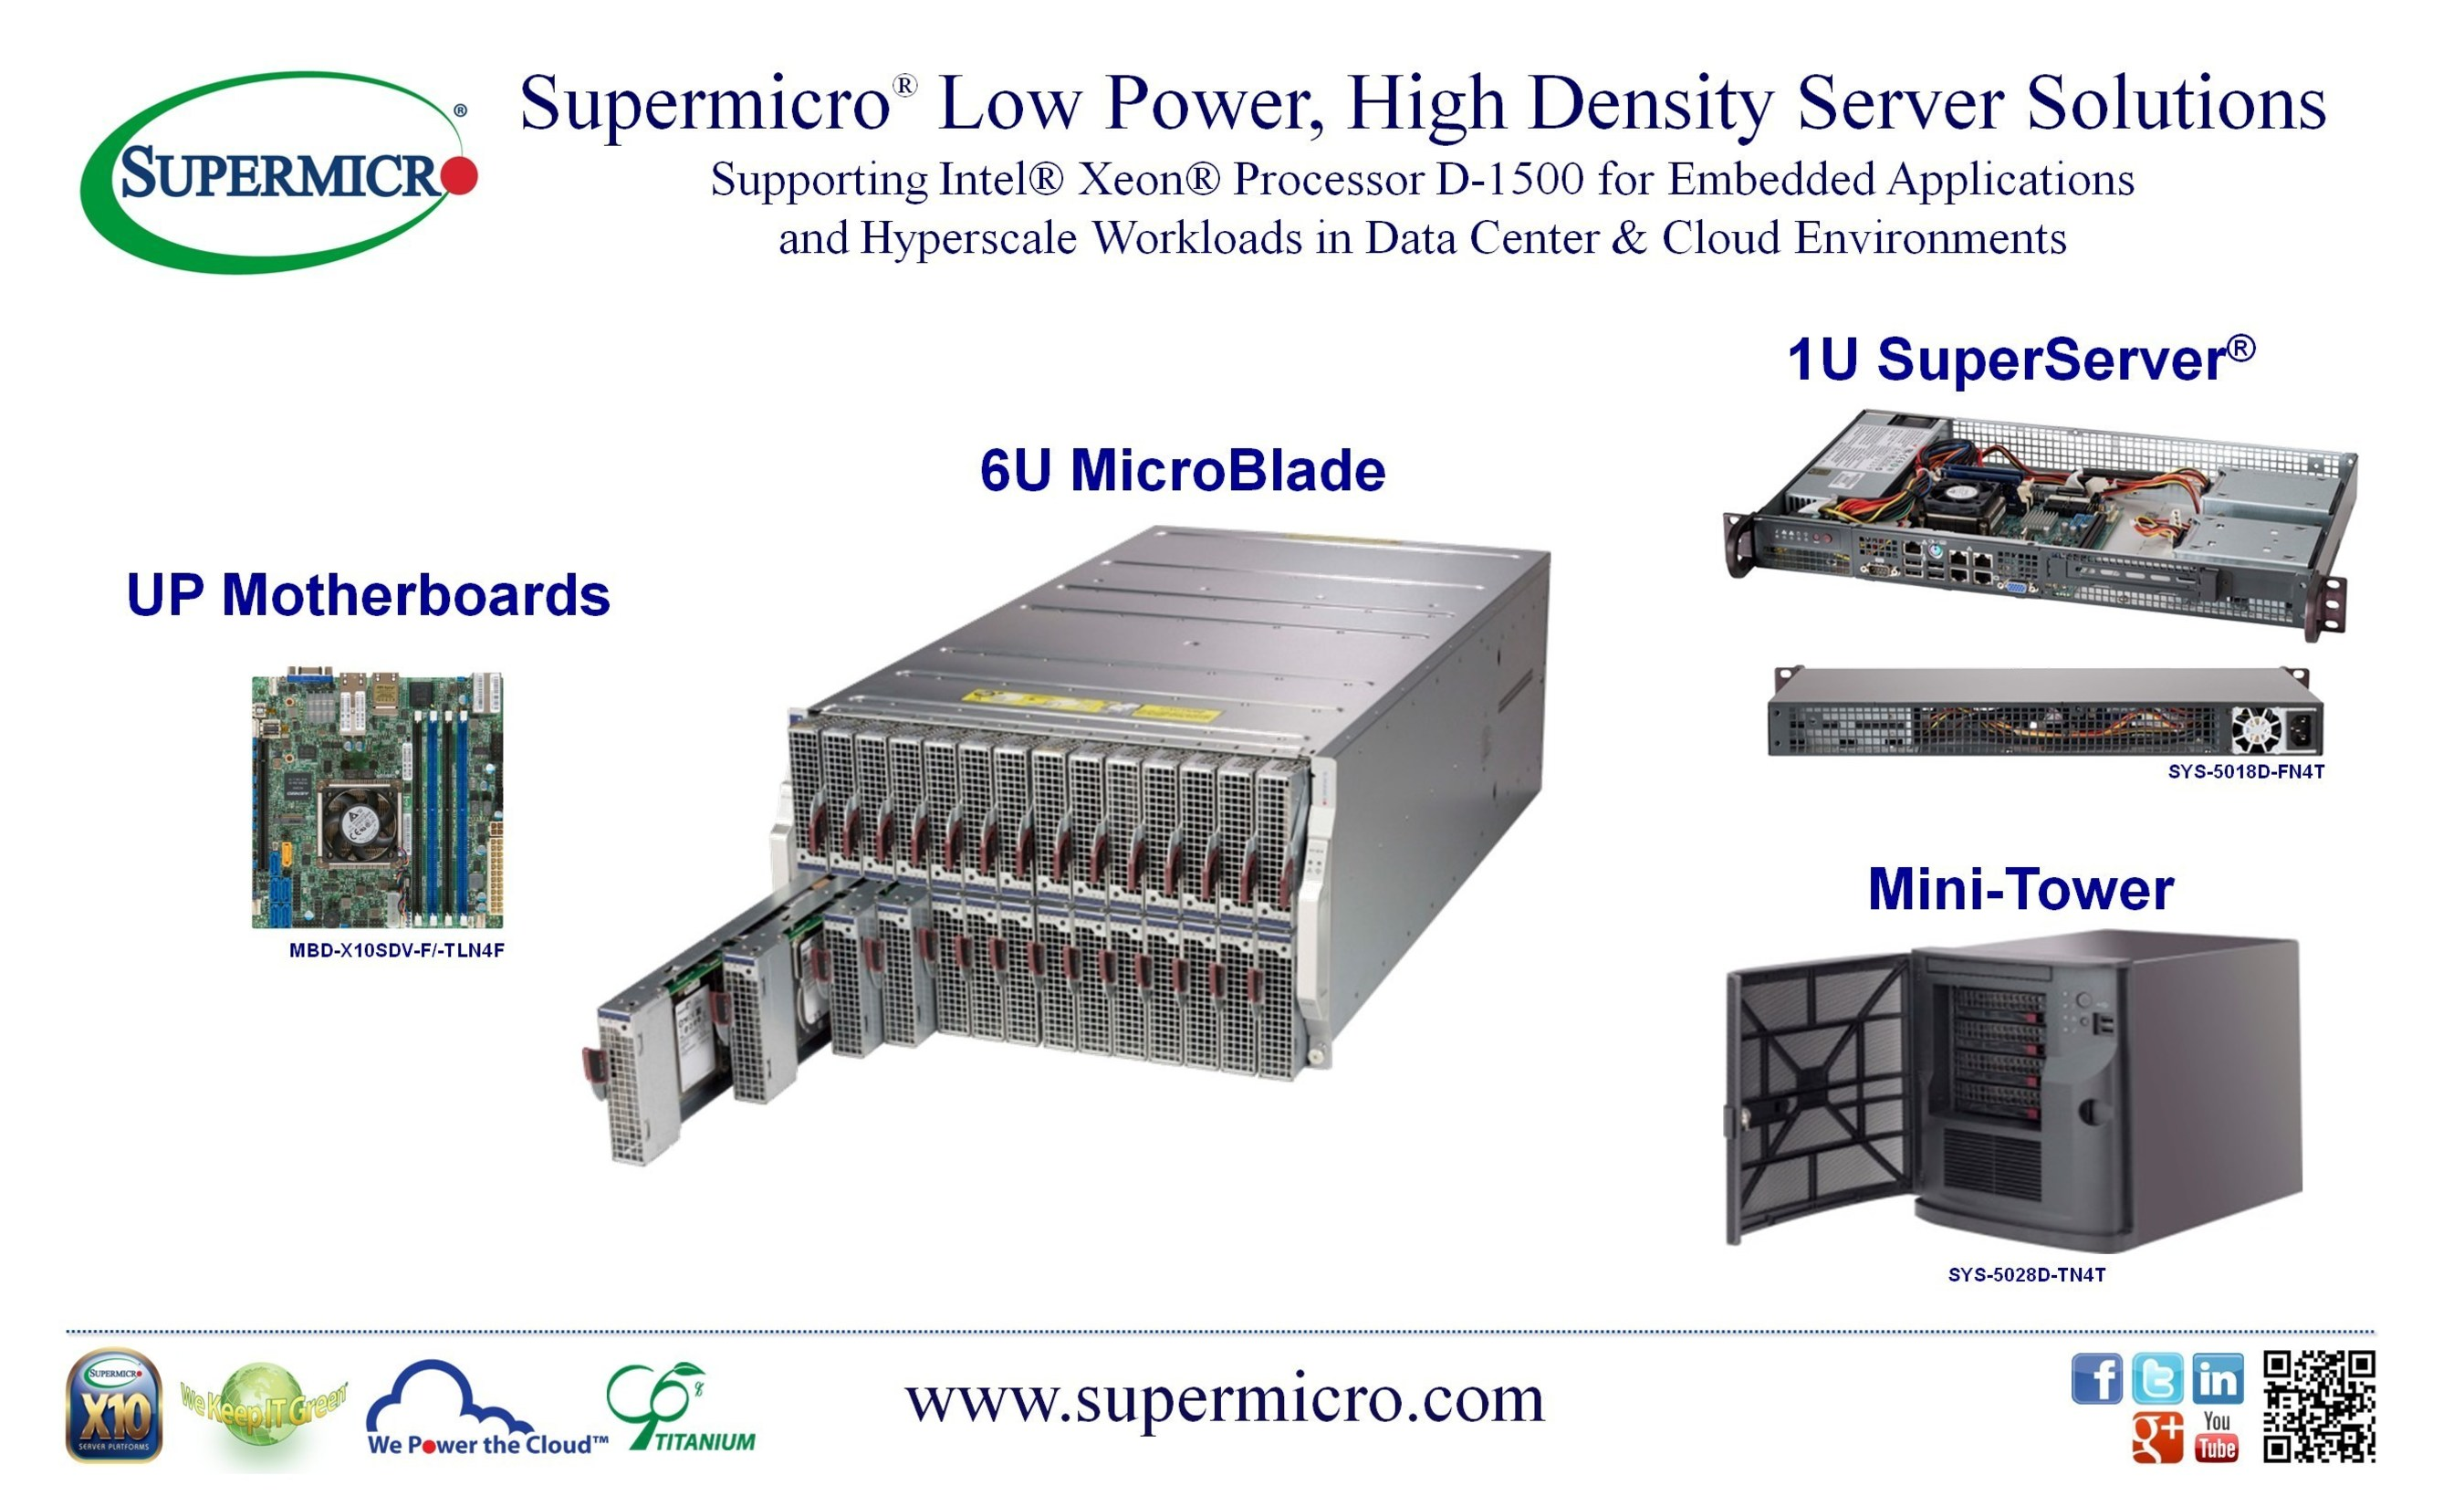 Supermicro® Launches New Line of Low Power, High Density Server